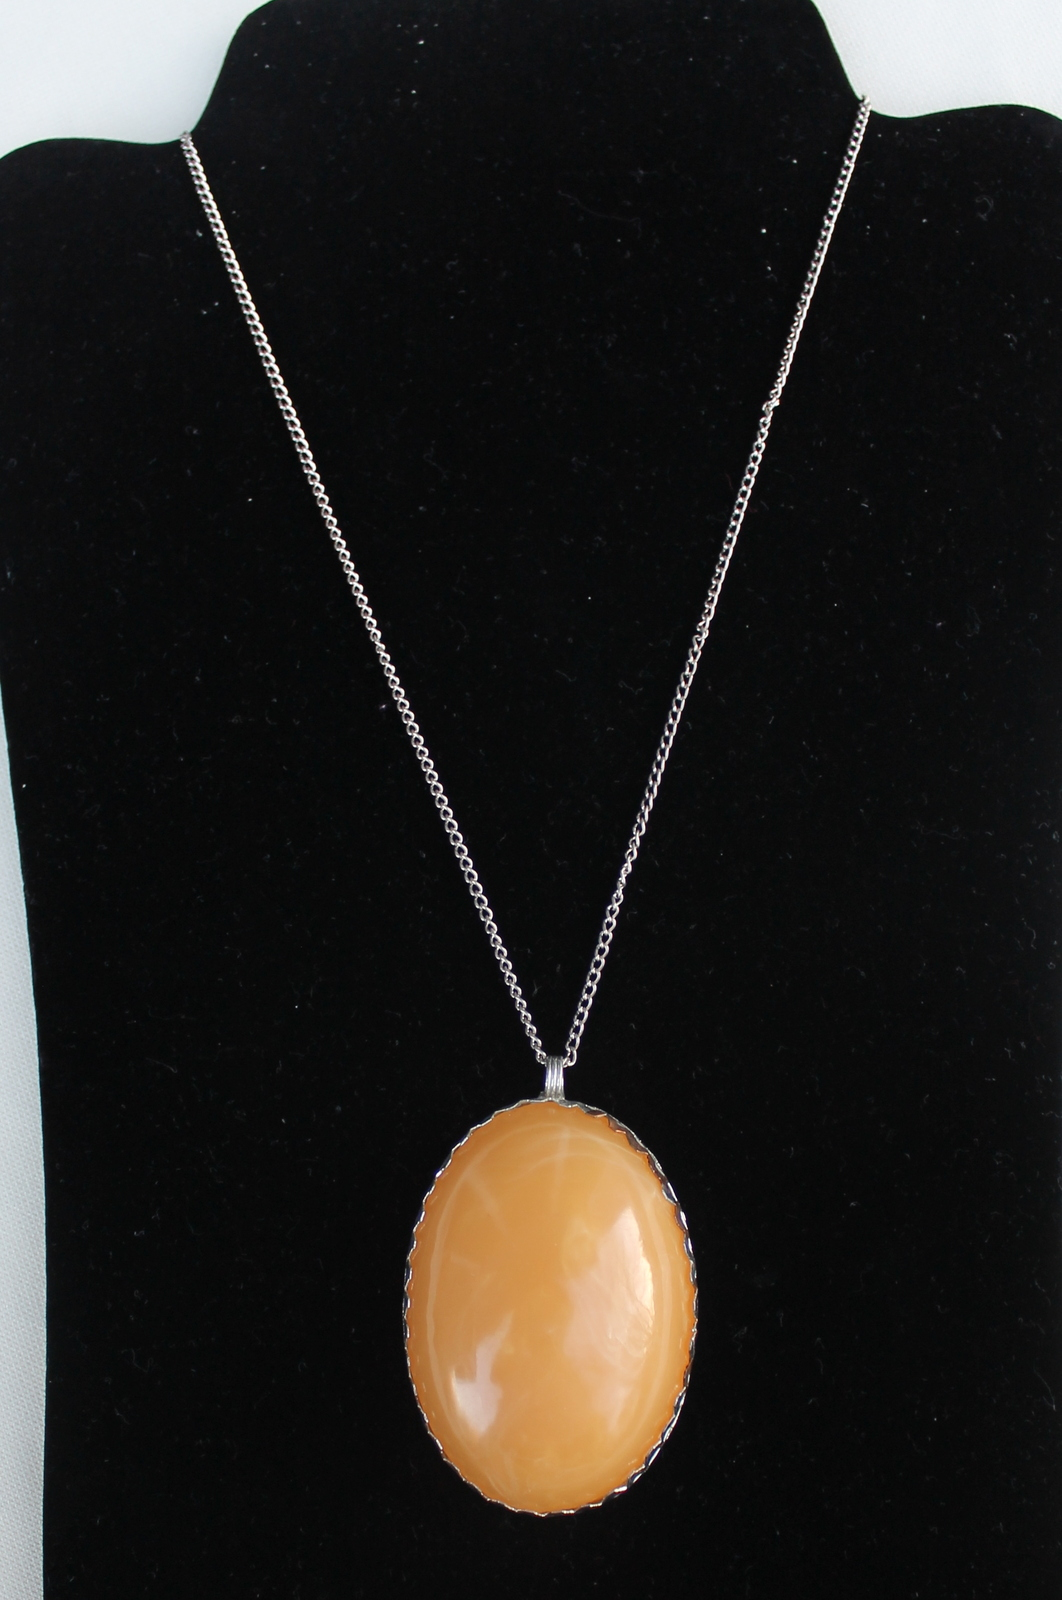 Oval Yellow Gold Glass Pendant Necklace